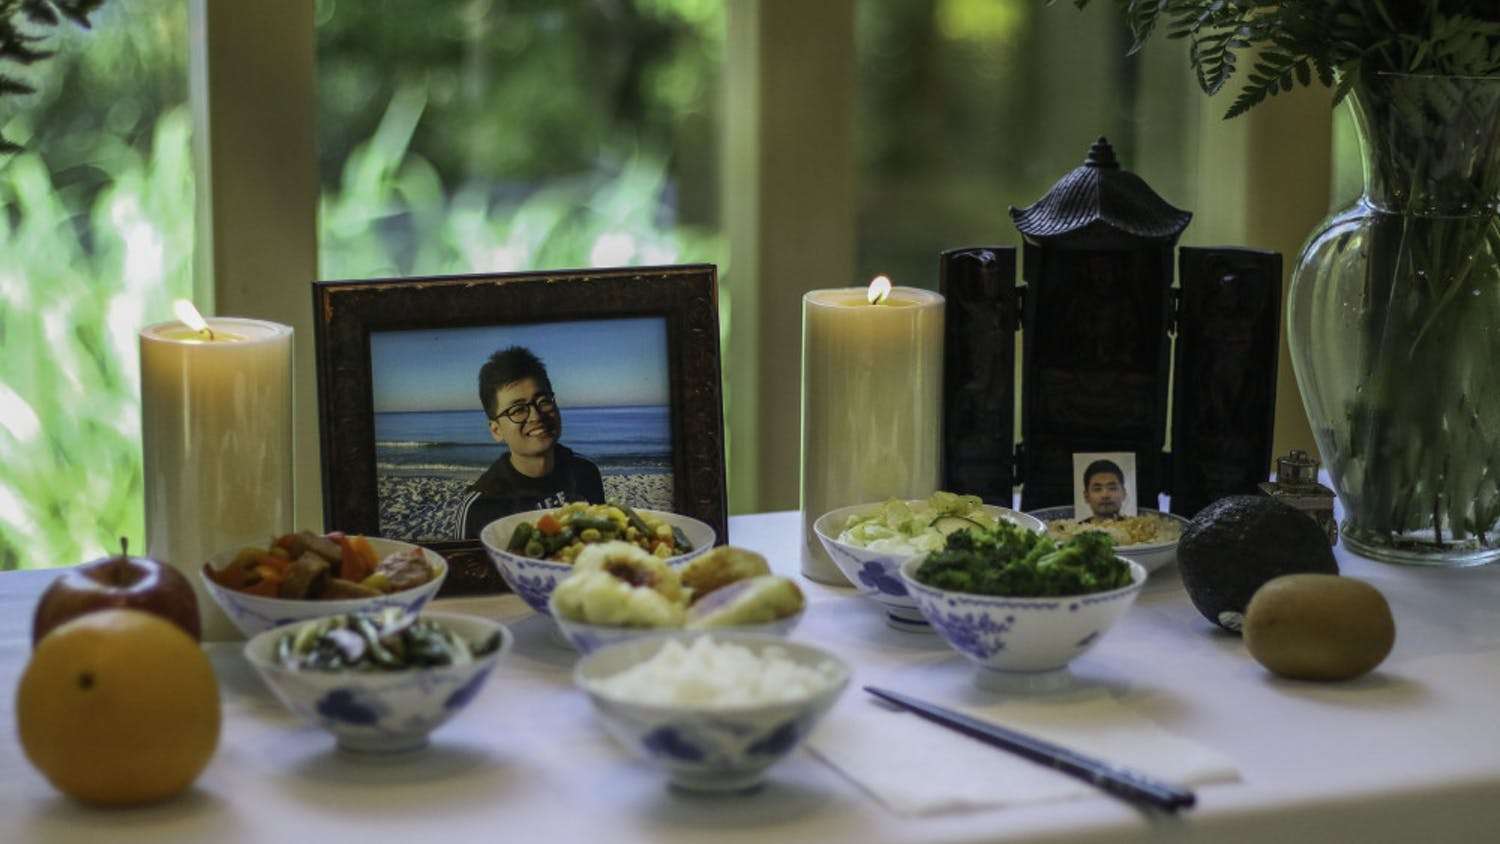 A memorial for Huixiang Chen, a University of Florida international doctoral candidate who died by suicide June 13, was made up of photos of Chen, candles and a variety of dishes Wednesday at the front of the Baughman Center during a celebration of life service. There was standing room only in the chapel as over 150 people gathered to remember Chen and pay respects to the family.